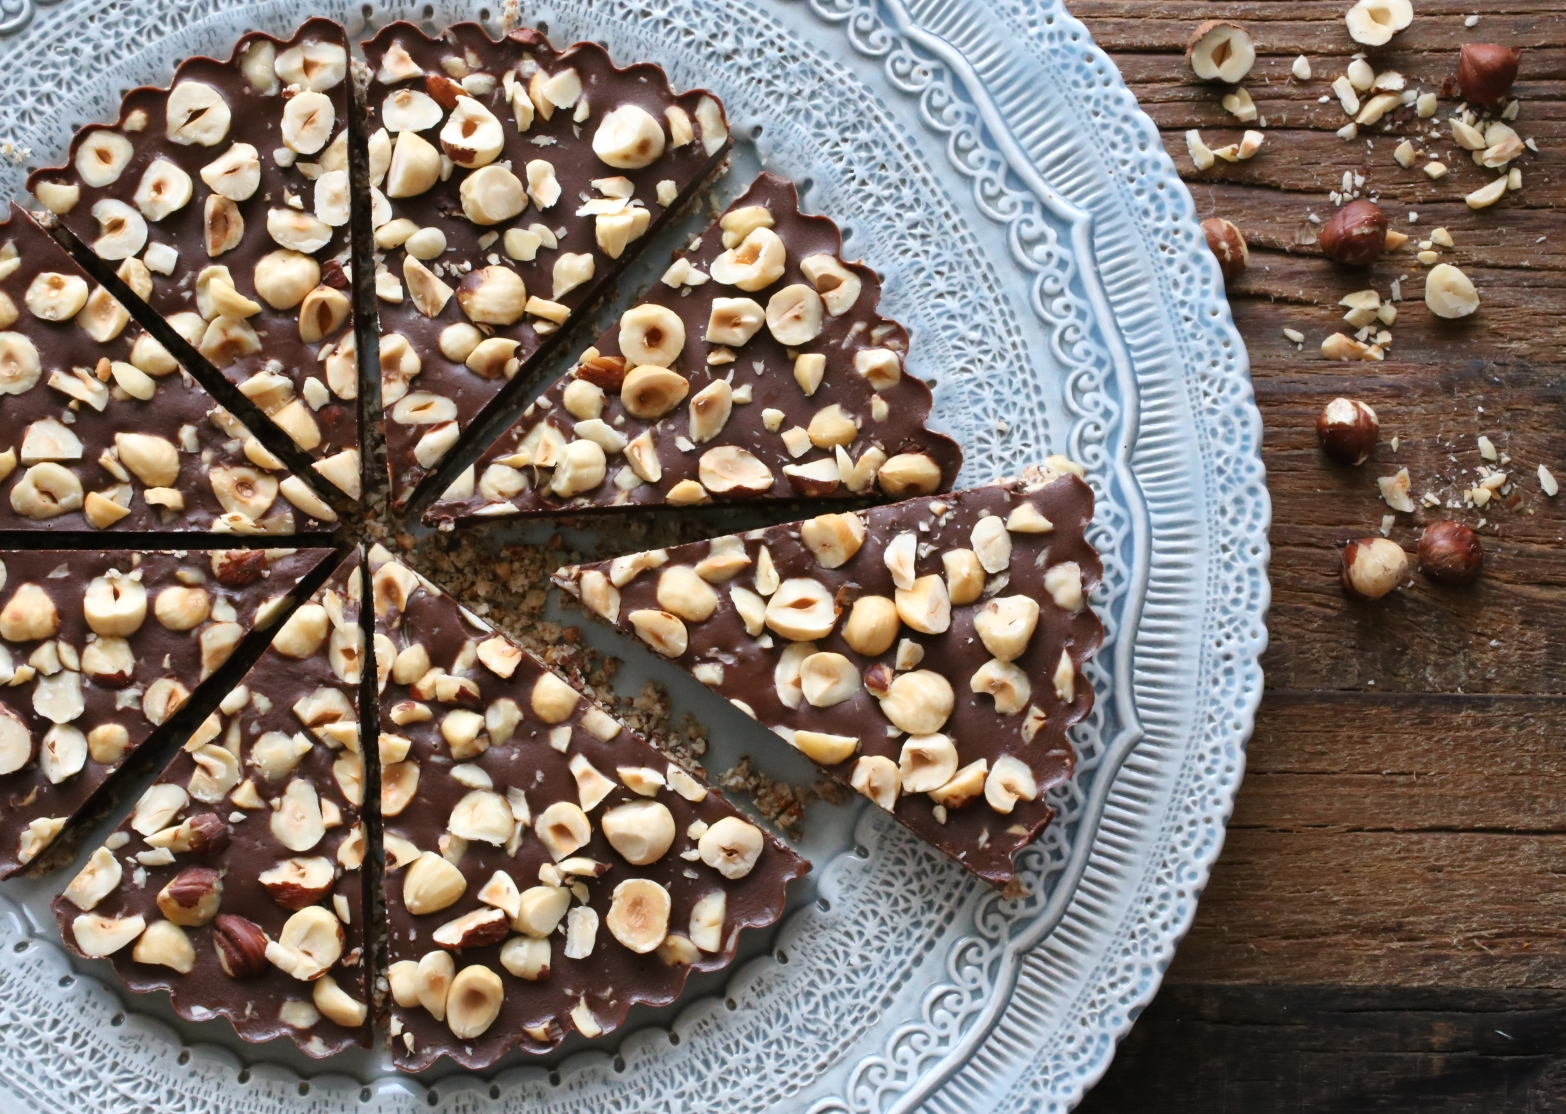 Chocolate Hazelnut Buckwheat Tart